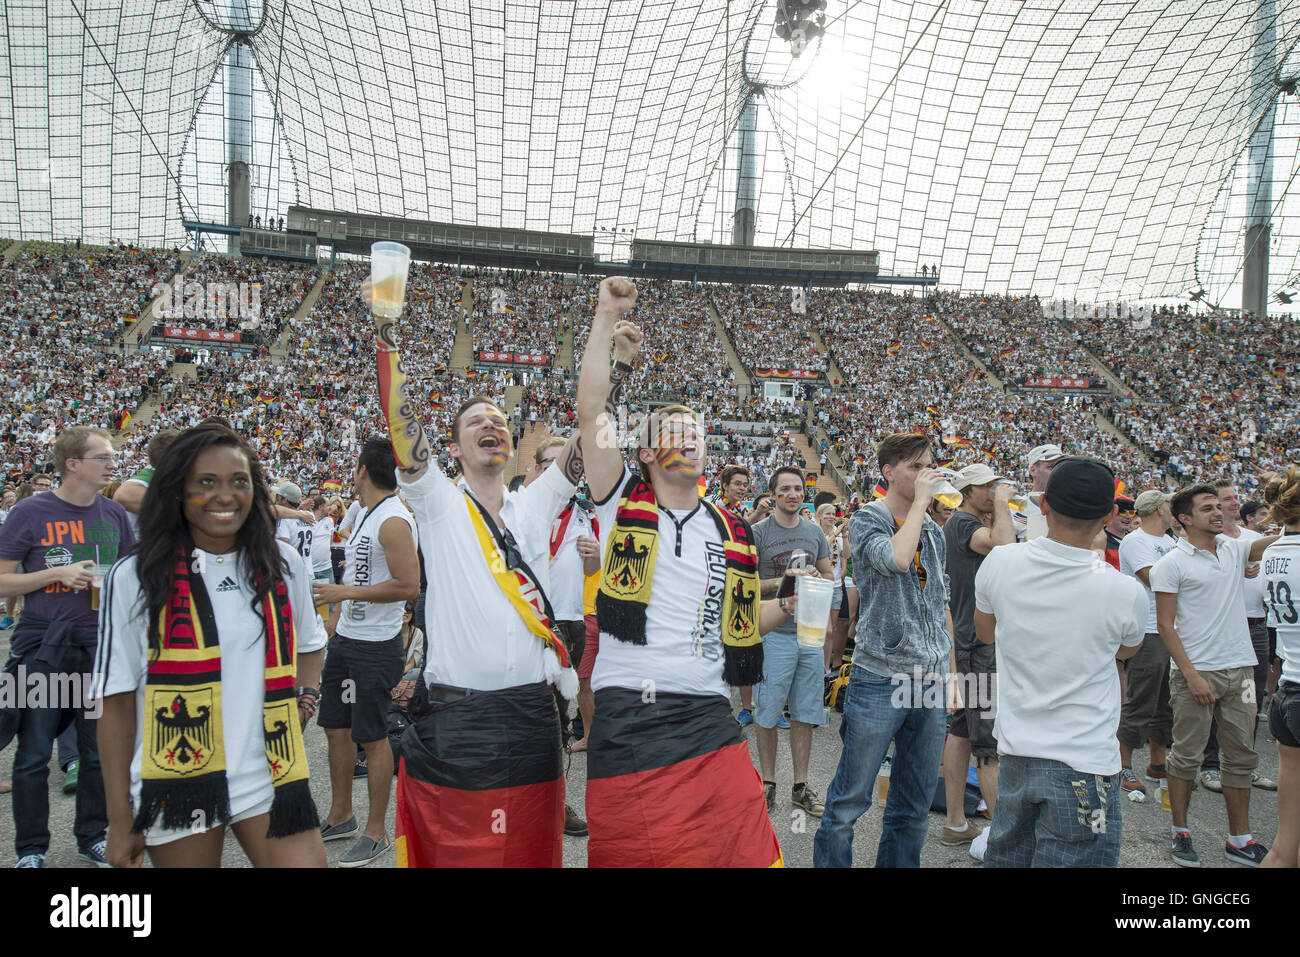 World Cup 2014: Fans at the public viewing in Munich, 2014 - Stock Image